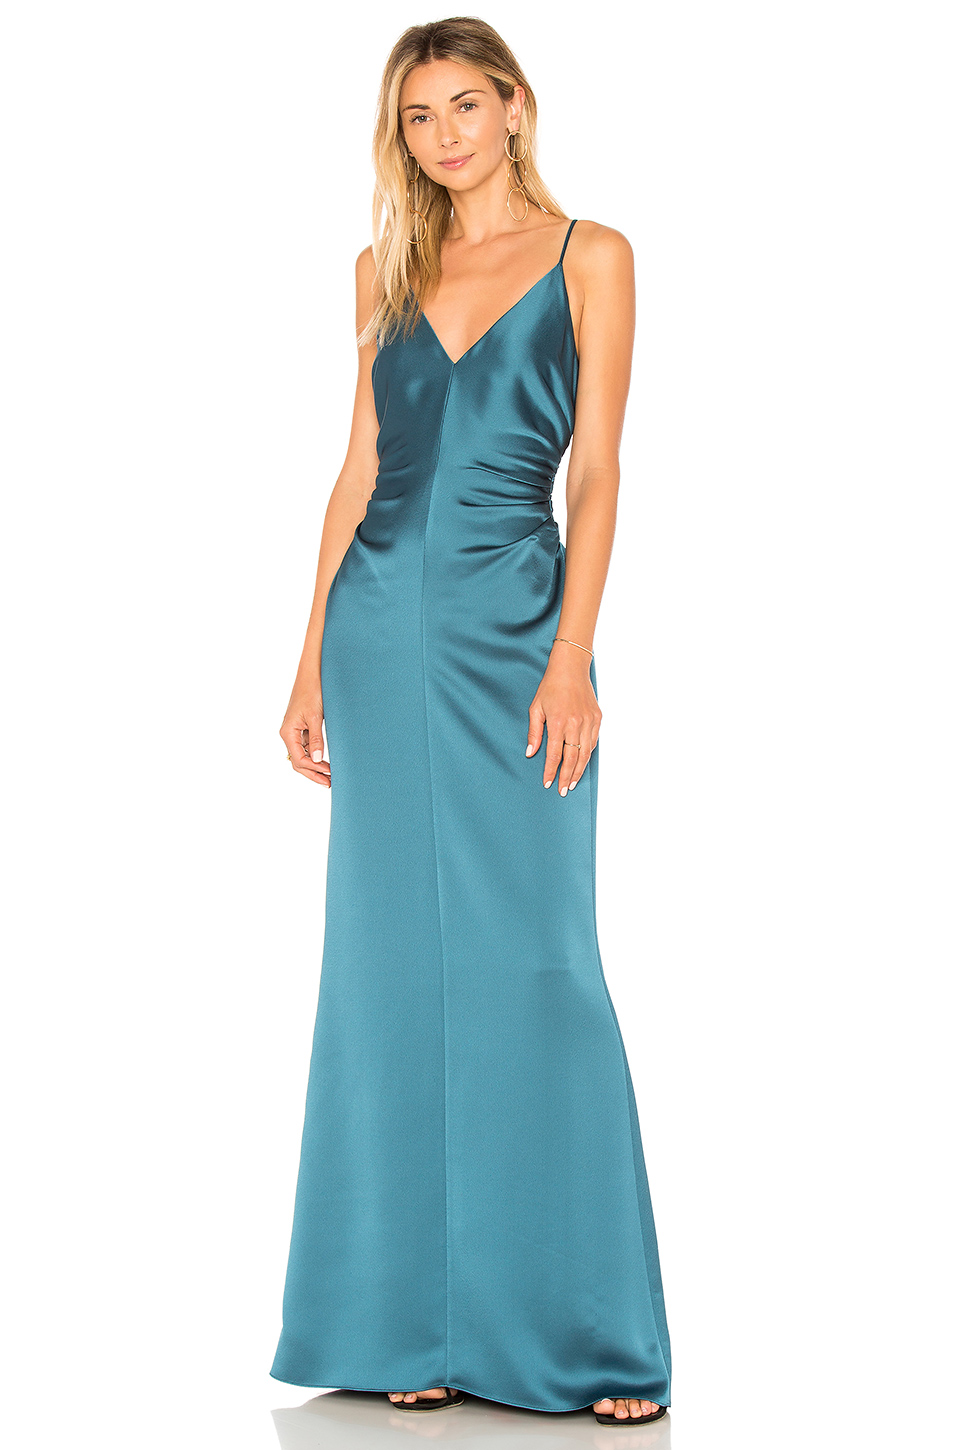 a3fb80aa00635 Buy Original Halston Heritage Slip Dress With Side Gathers at ...